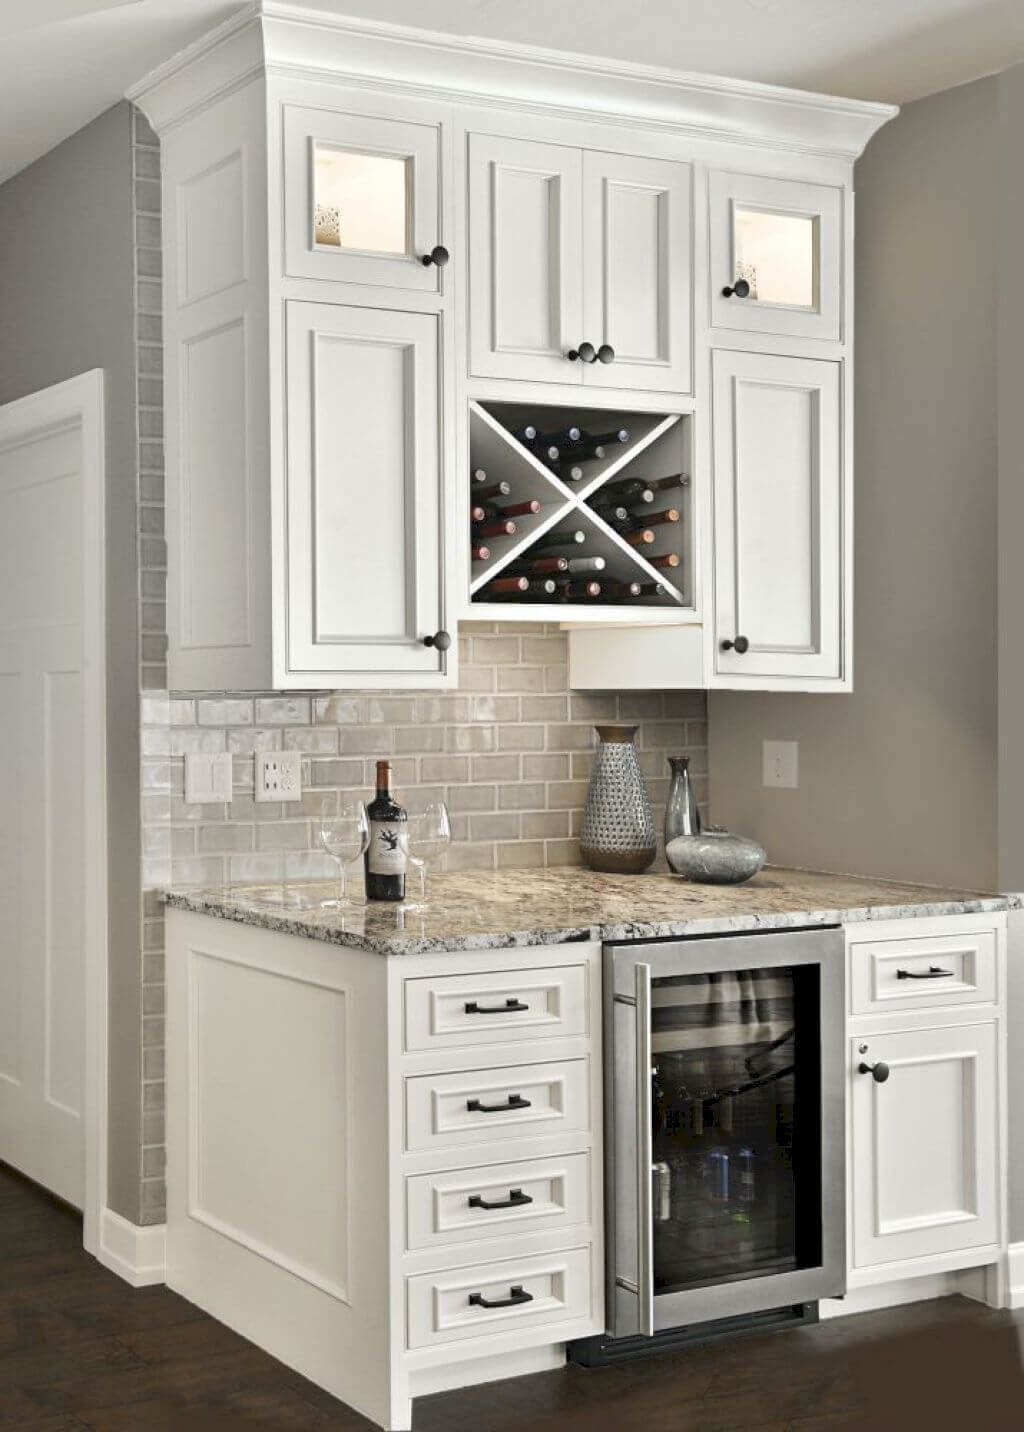 Kitchen Cabinet Decor Ideas 47 Stunning White Kichen Cabinet Decor Ideas With Photos For 2019